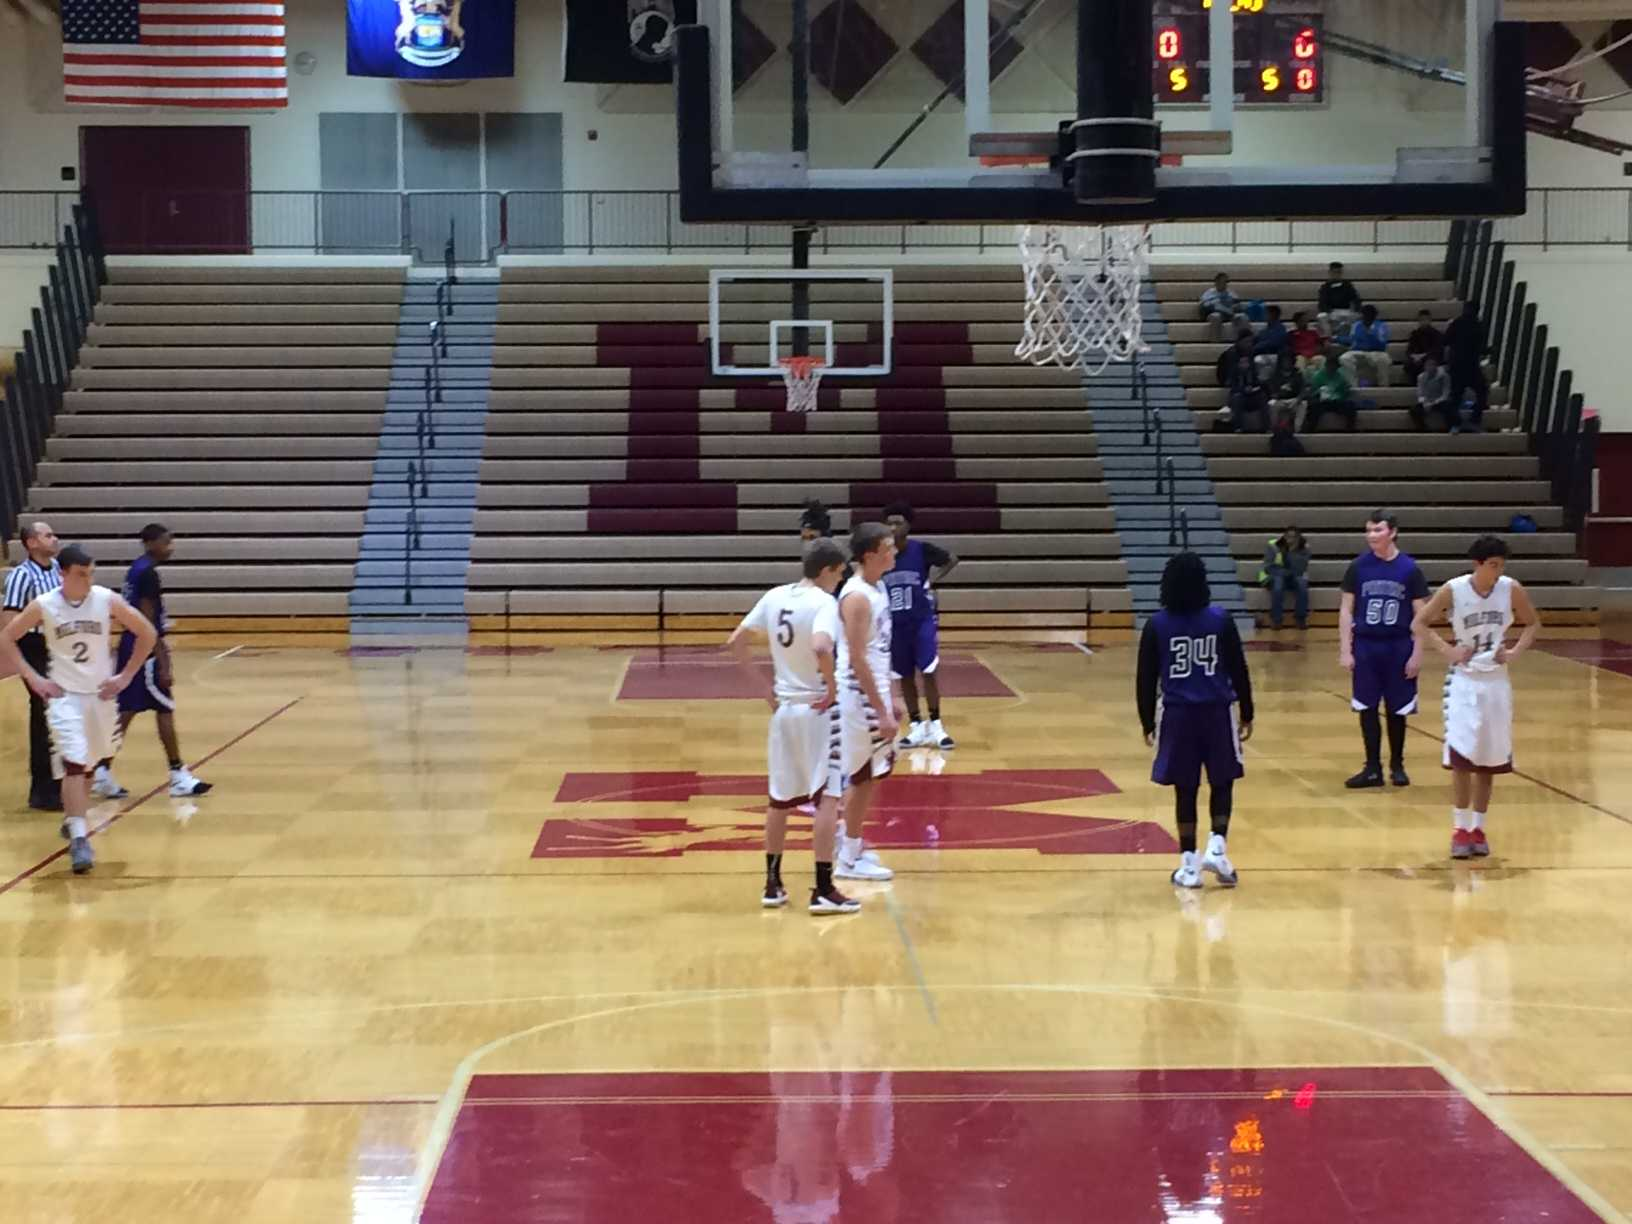 The Milford JV basketball team starts off with only four players on the court in their first home game, leaving a spot open in honor of Cole.